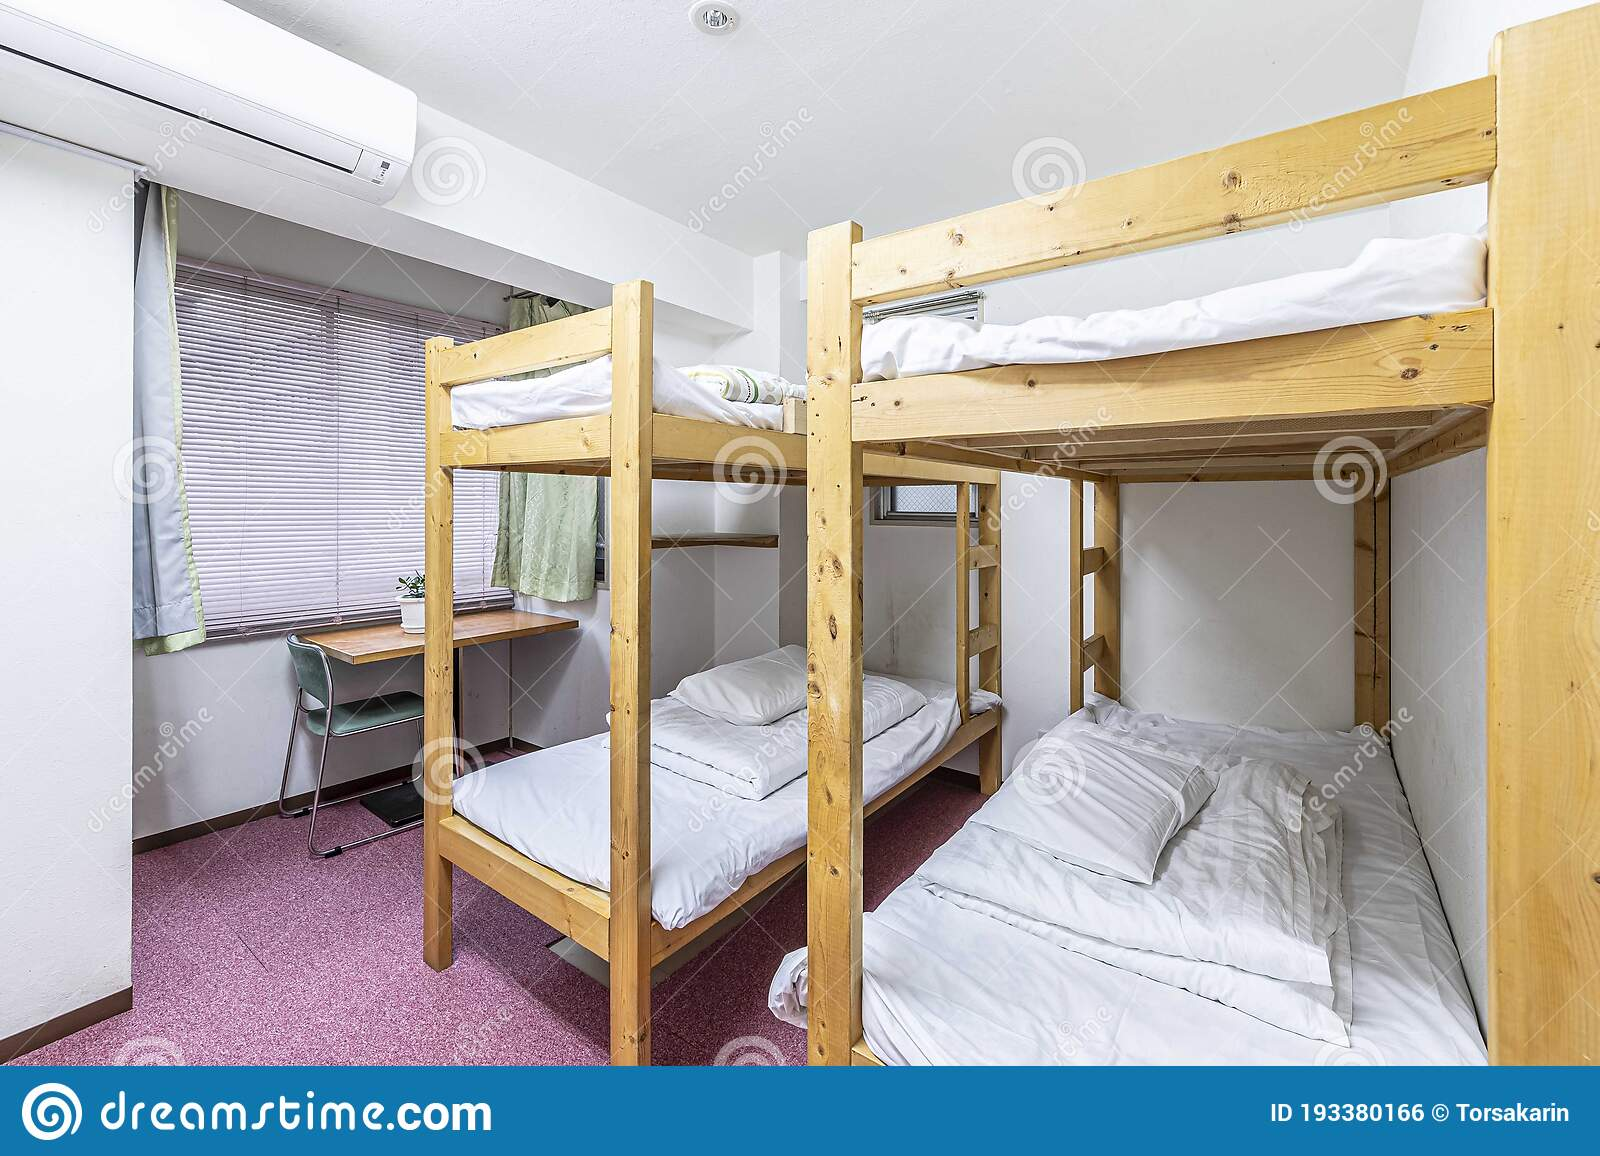 Two Bunk Bed And Mattress In Guest House Stock Photo Image Of Home Clean 193380166